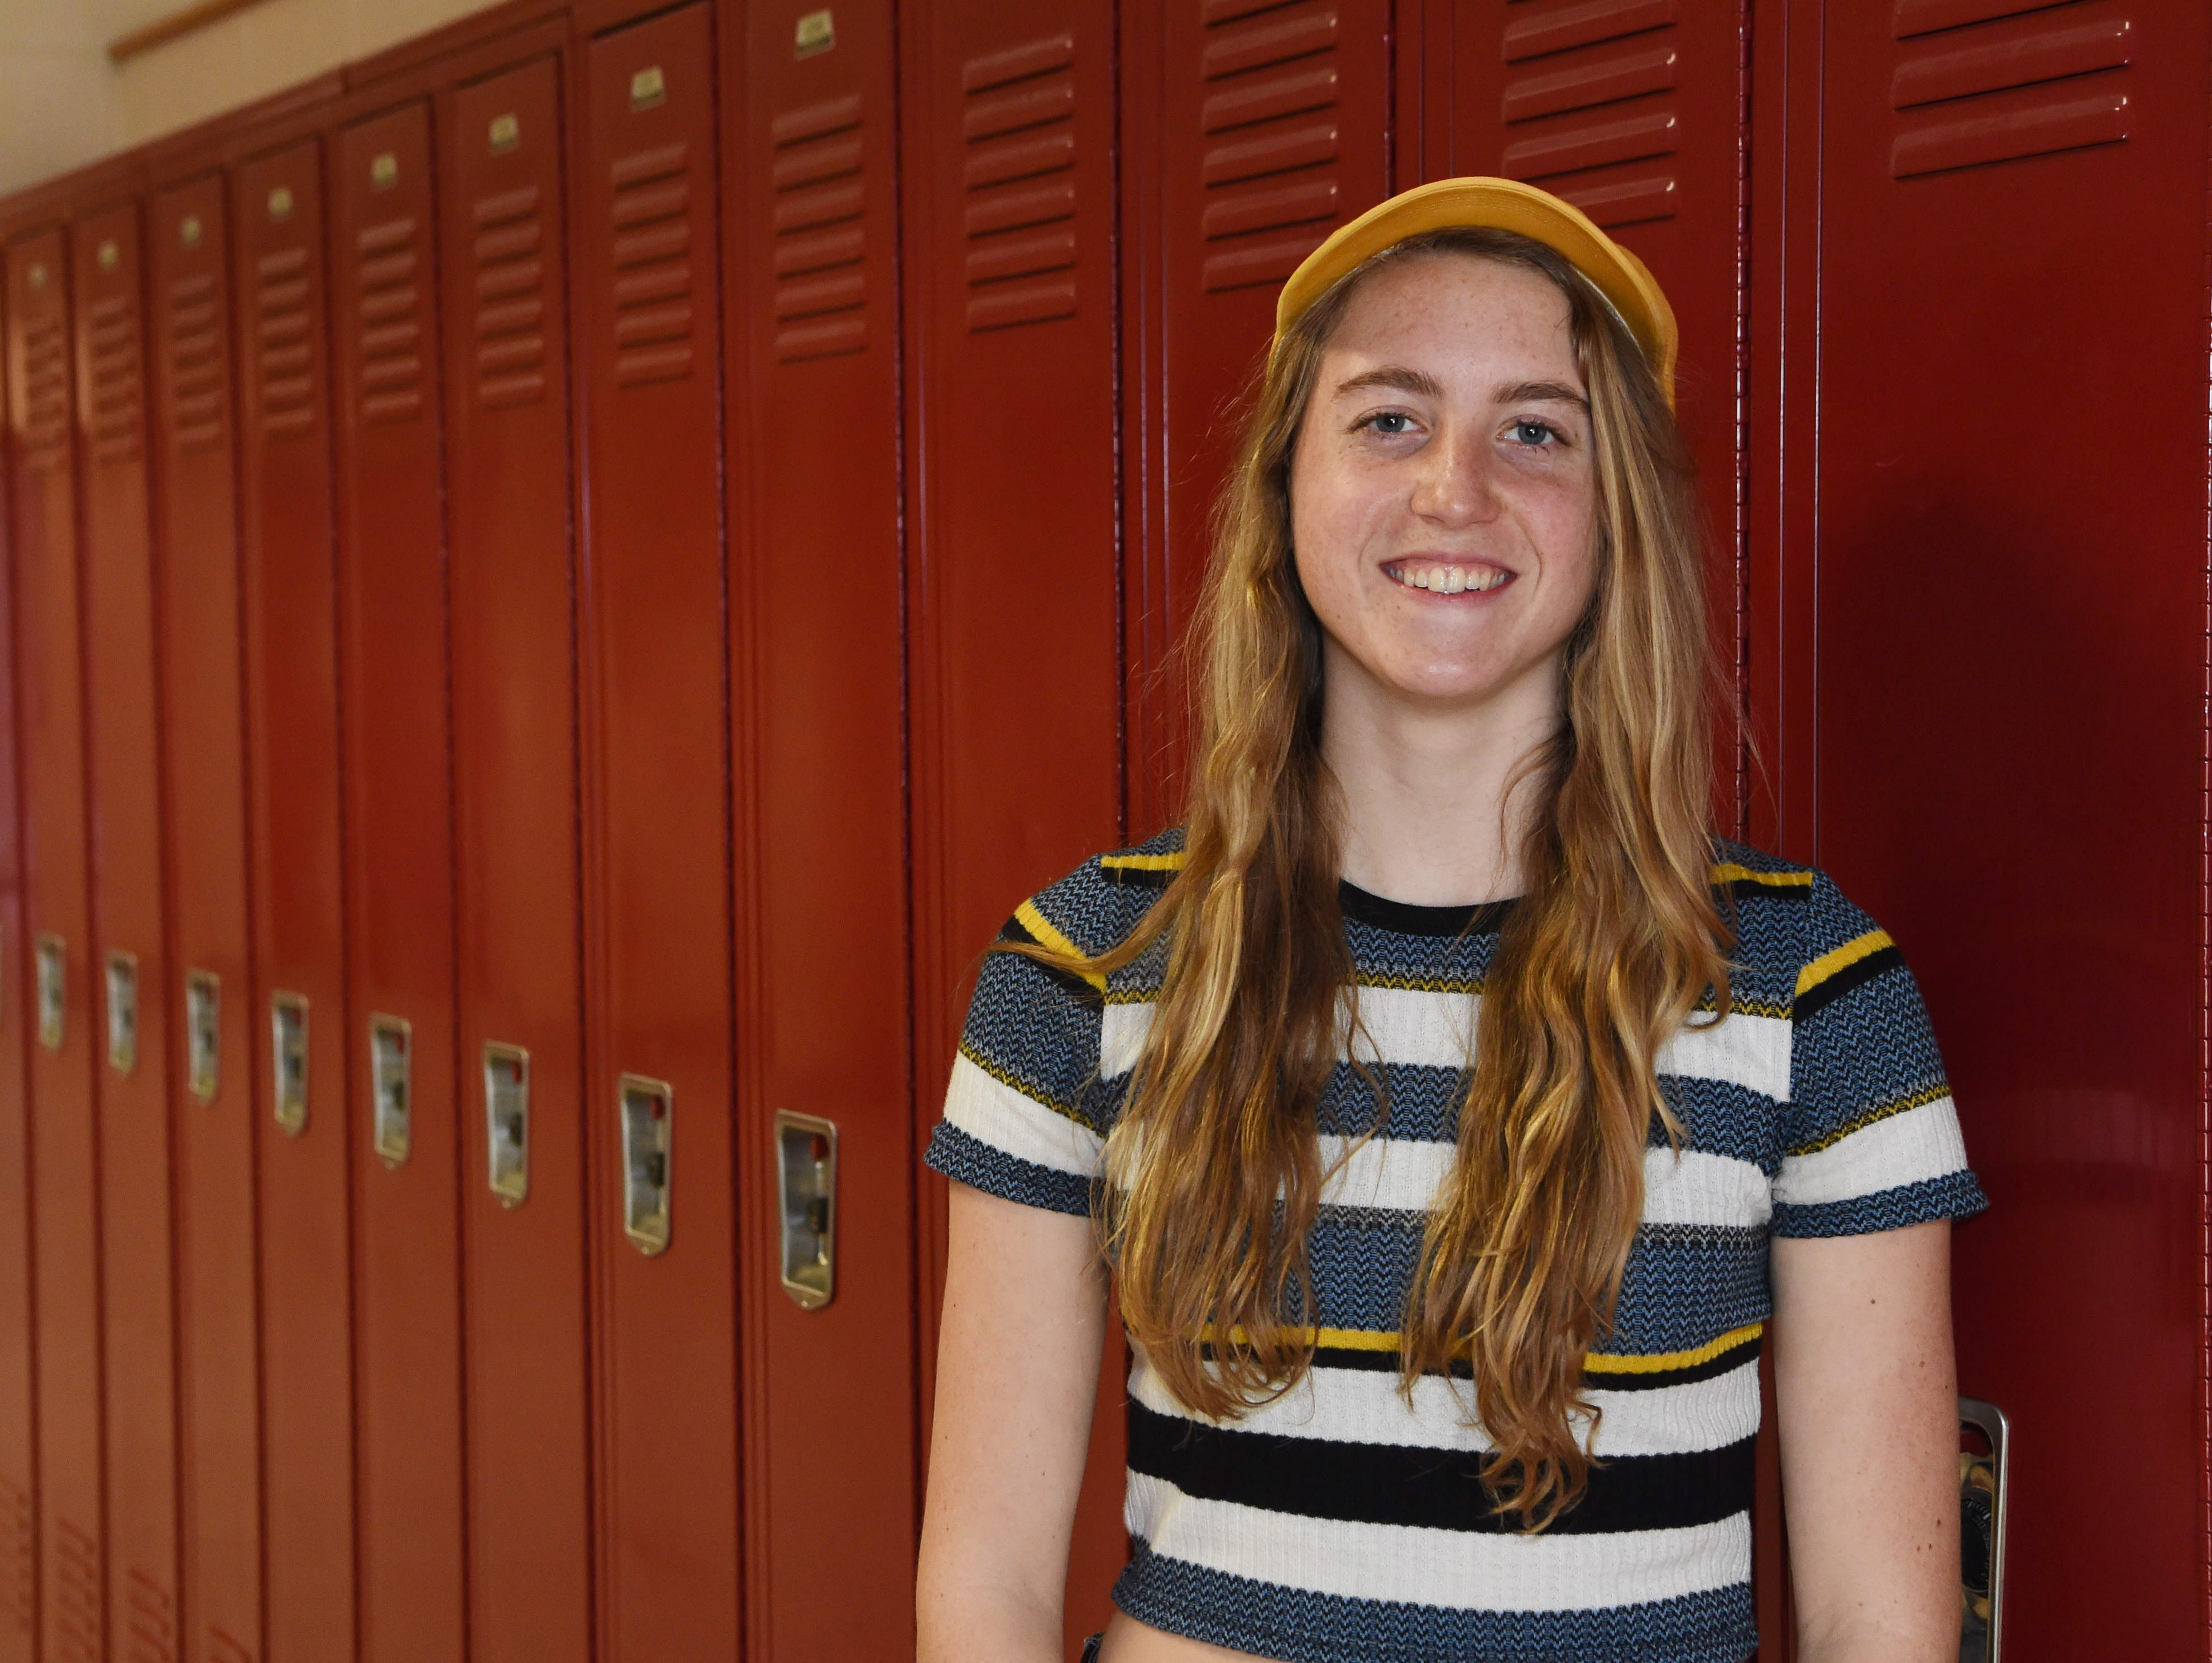 Jordan Nagel, 16, a junior at New Paltz High School and a member of the school's skiing team.